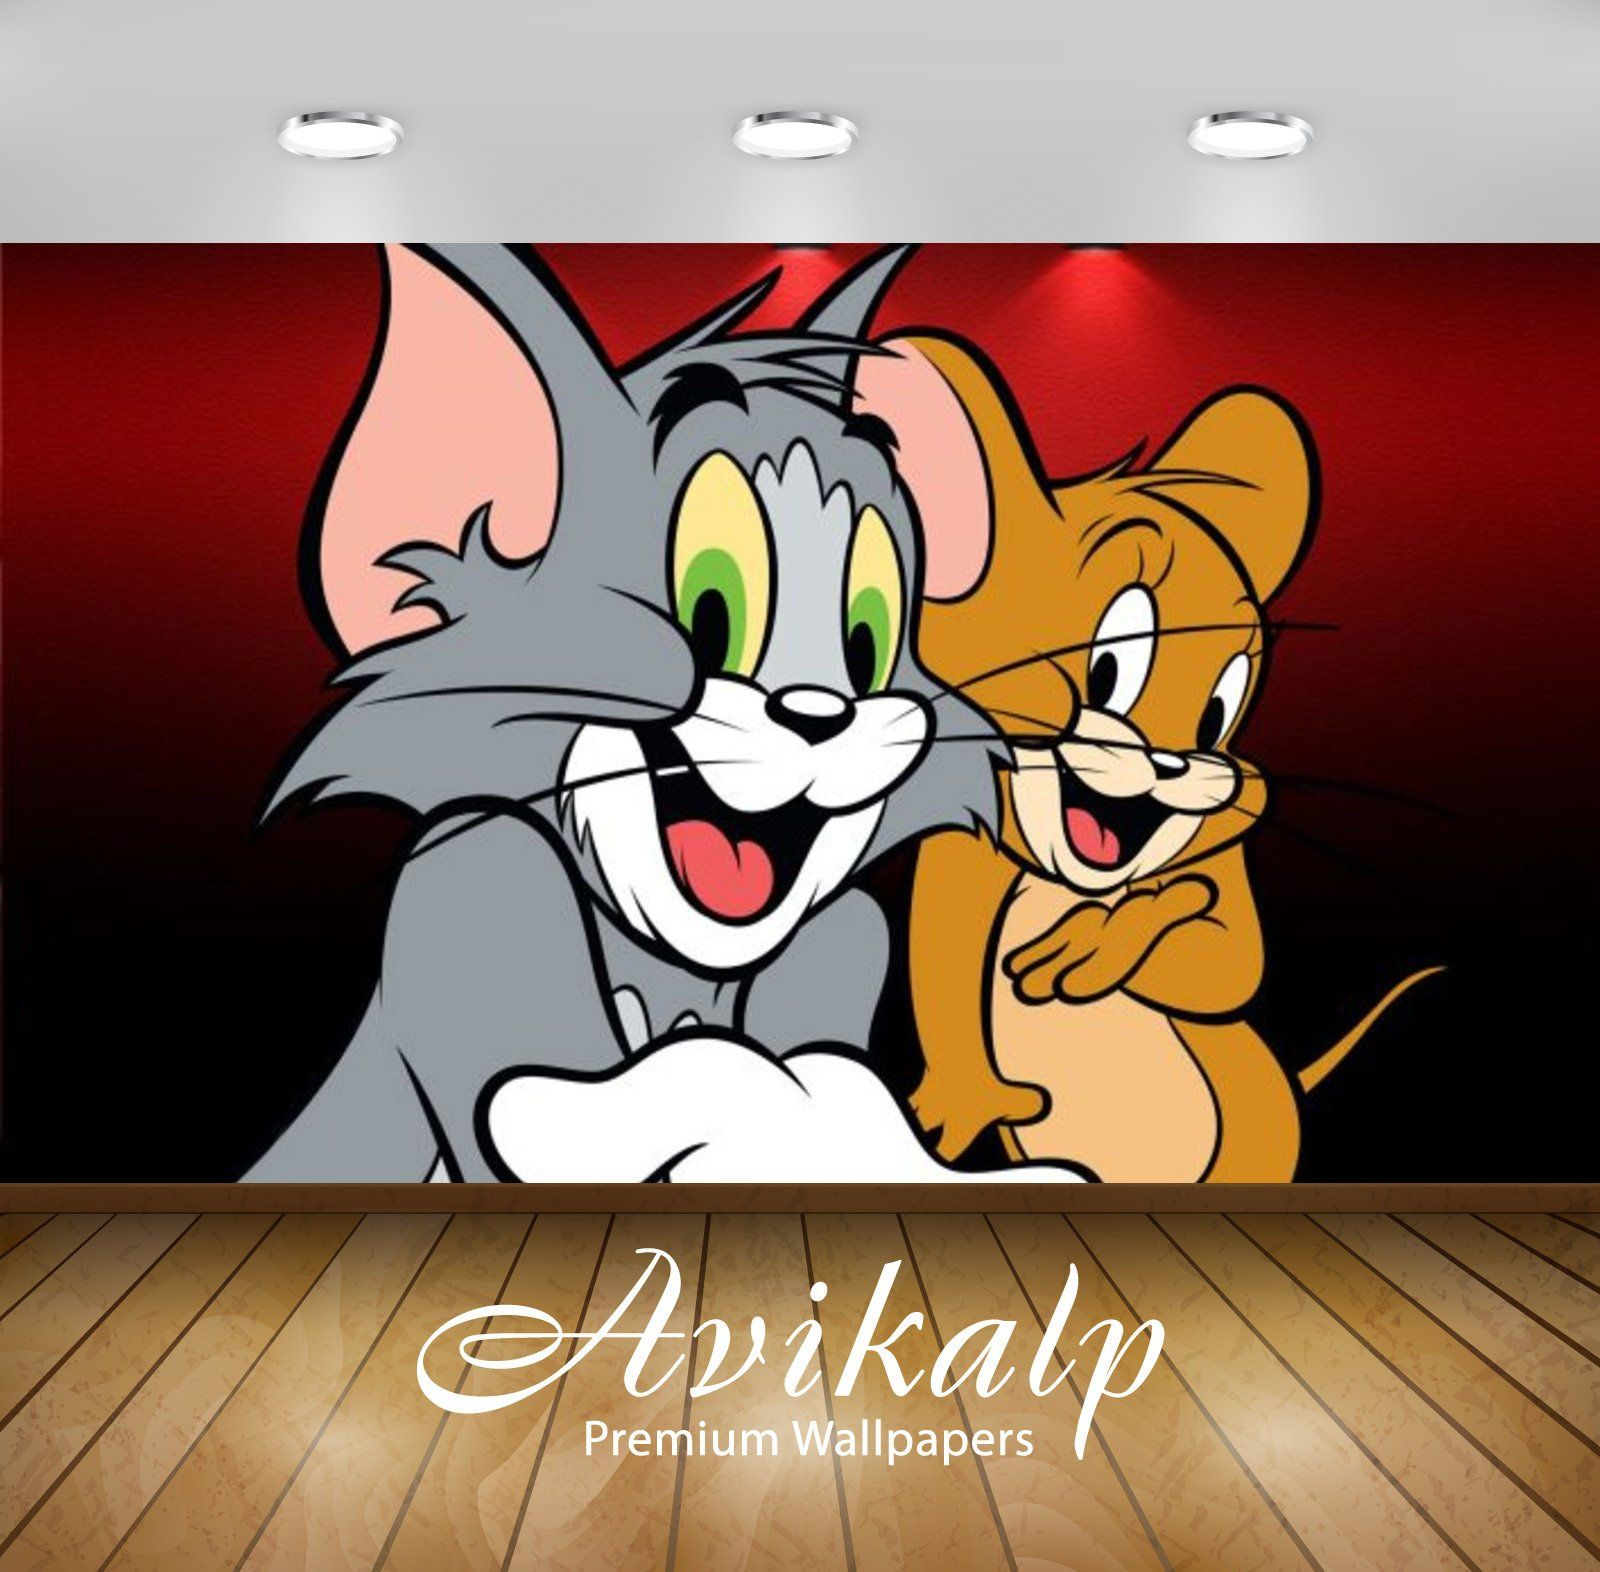 Avikalp Exclusive Awi2259 Tom And Jerry Full Hd Wallpapers For Living Room Hall Kids Room Kitchen In 2020 3d Wallpaper Cartoon Full Hd Wallpaper Kids Room Wallpaper